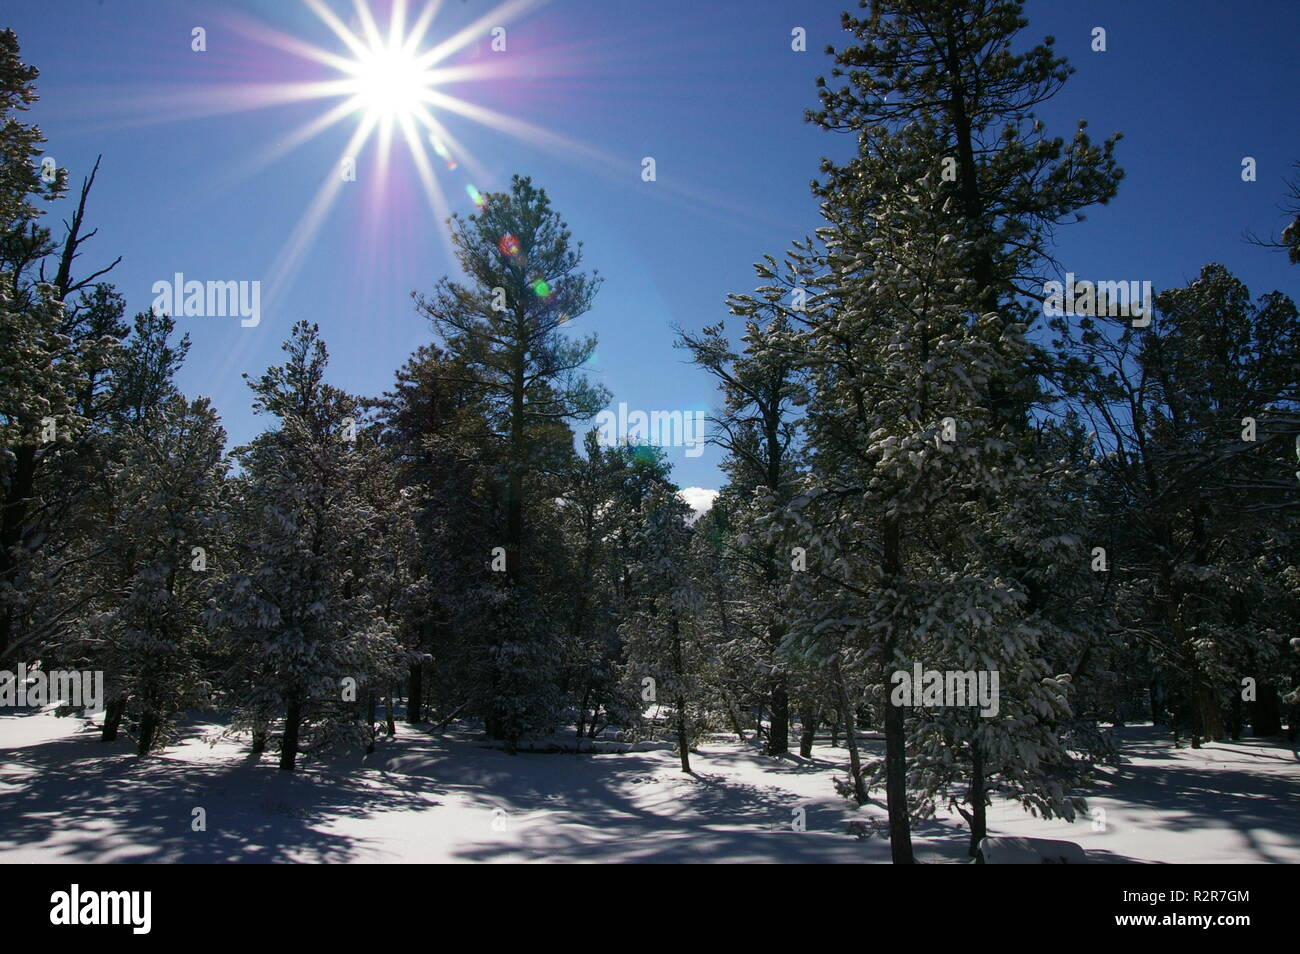 Landscape orientation of winter scene with coniferous pines and snow with sun burst in Grand Canyon National Park, Arizona - Stock Image